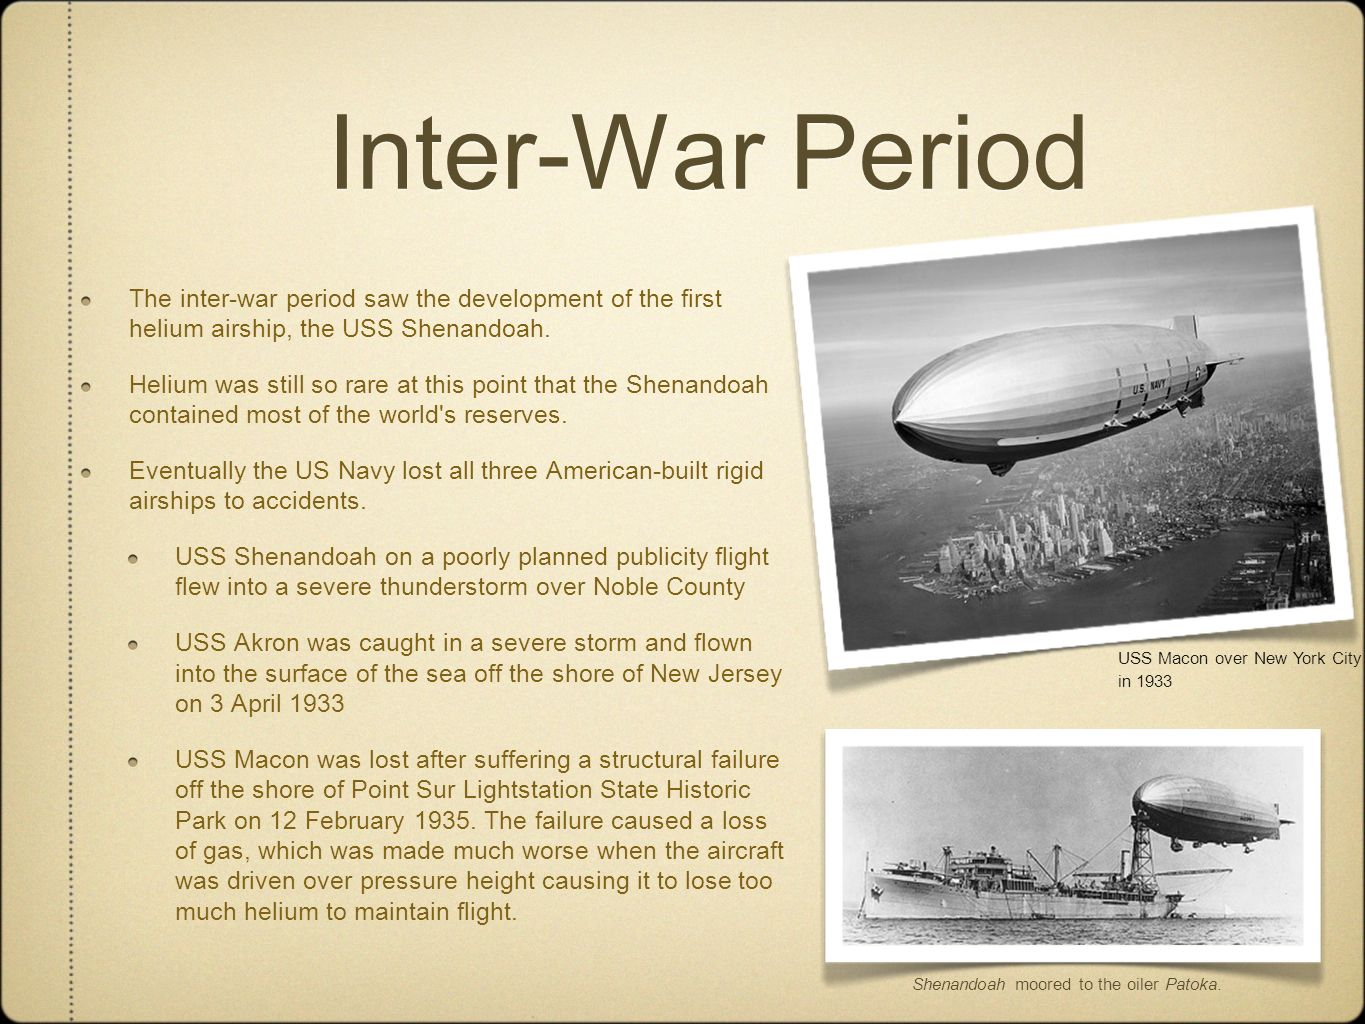 Inter-War Period The inter-war period saw the development of the first helium airship, the USS Shenandoah.